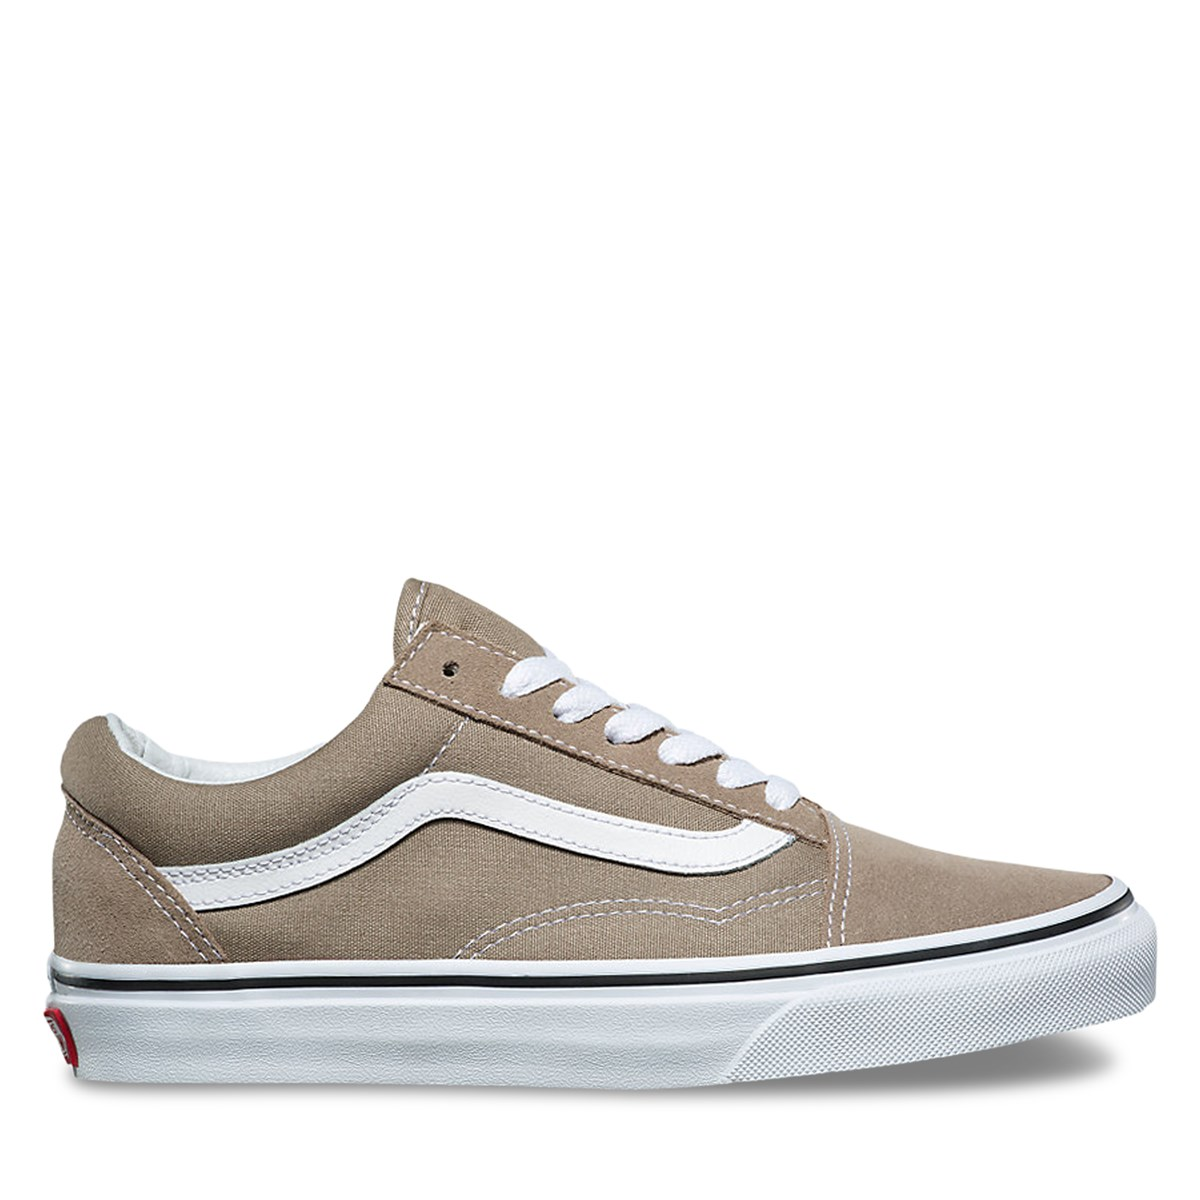 bbda5a144def Women s Old Skool Sneaker in Desert Taupe